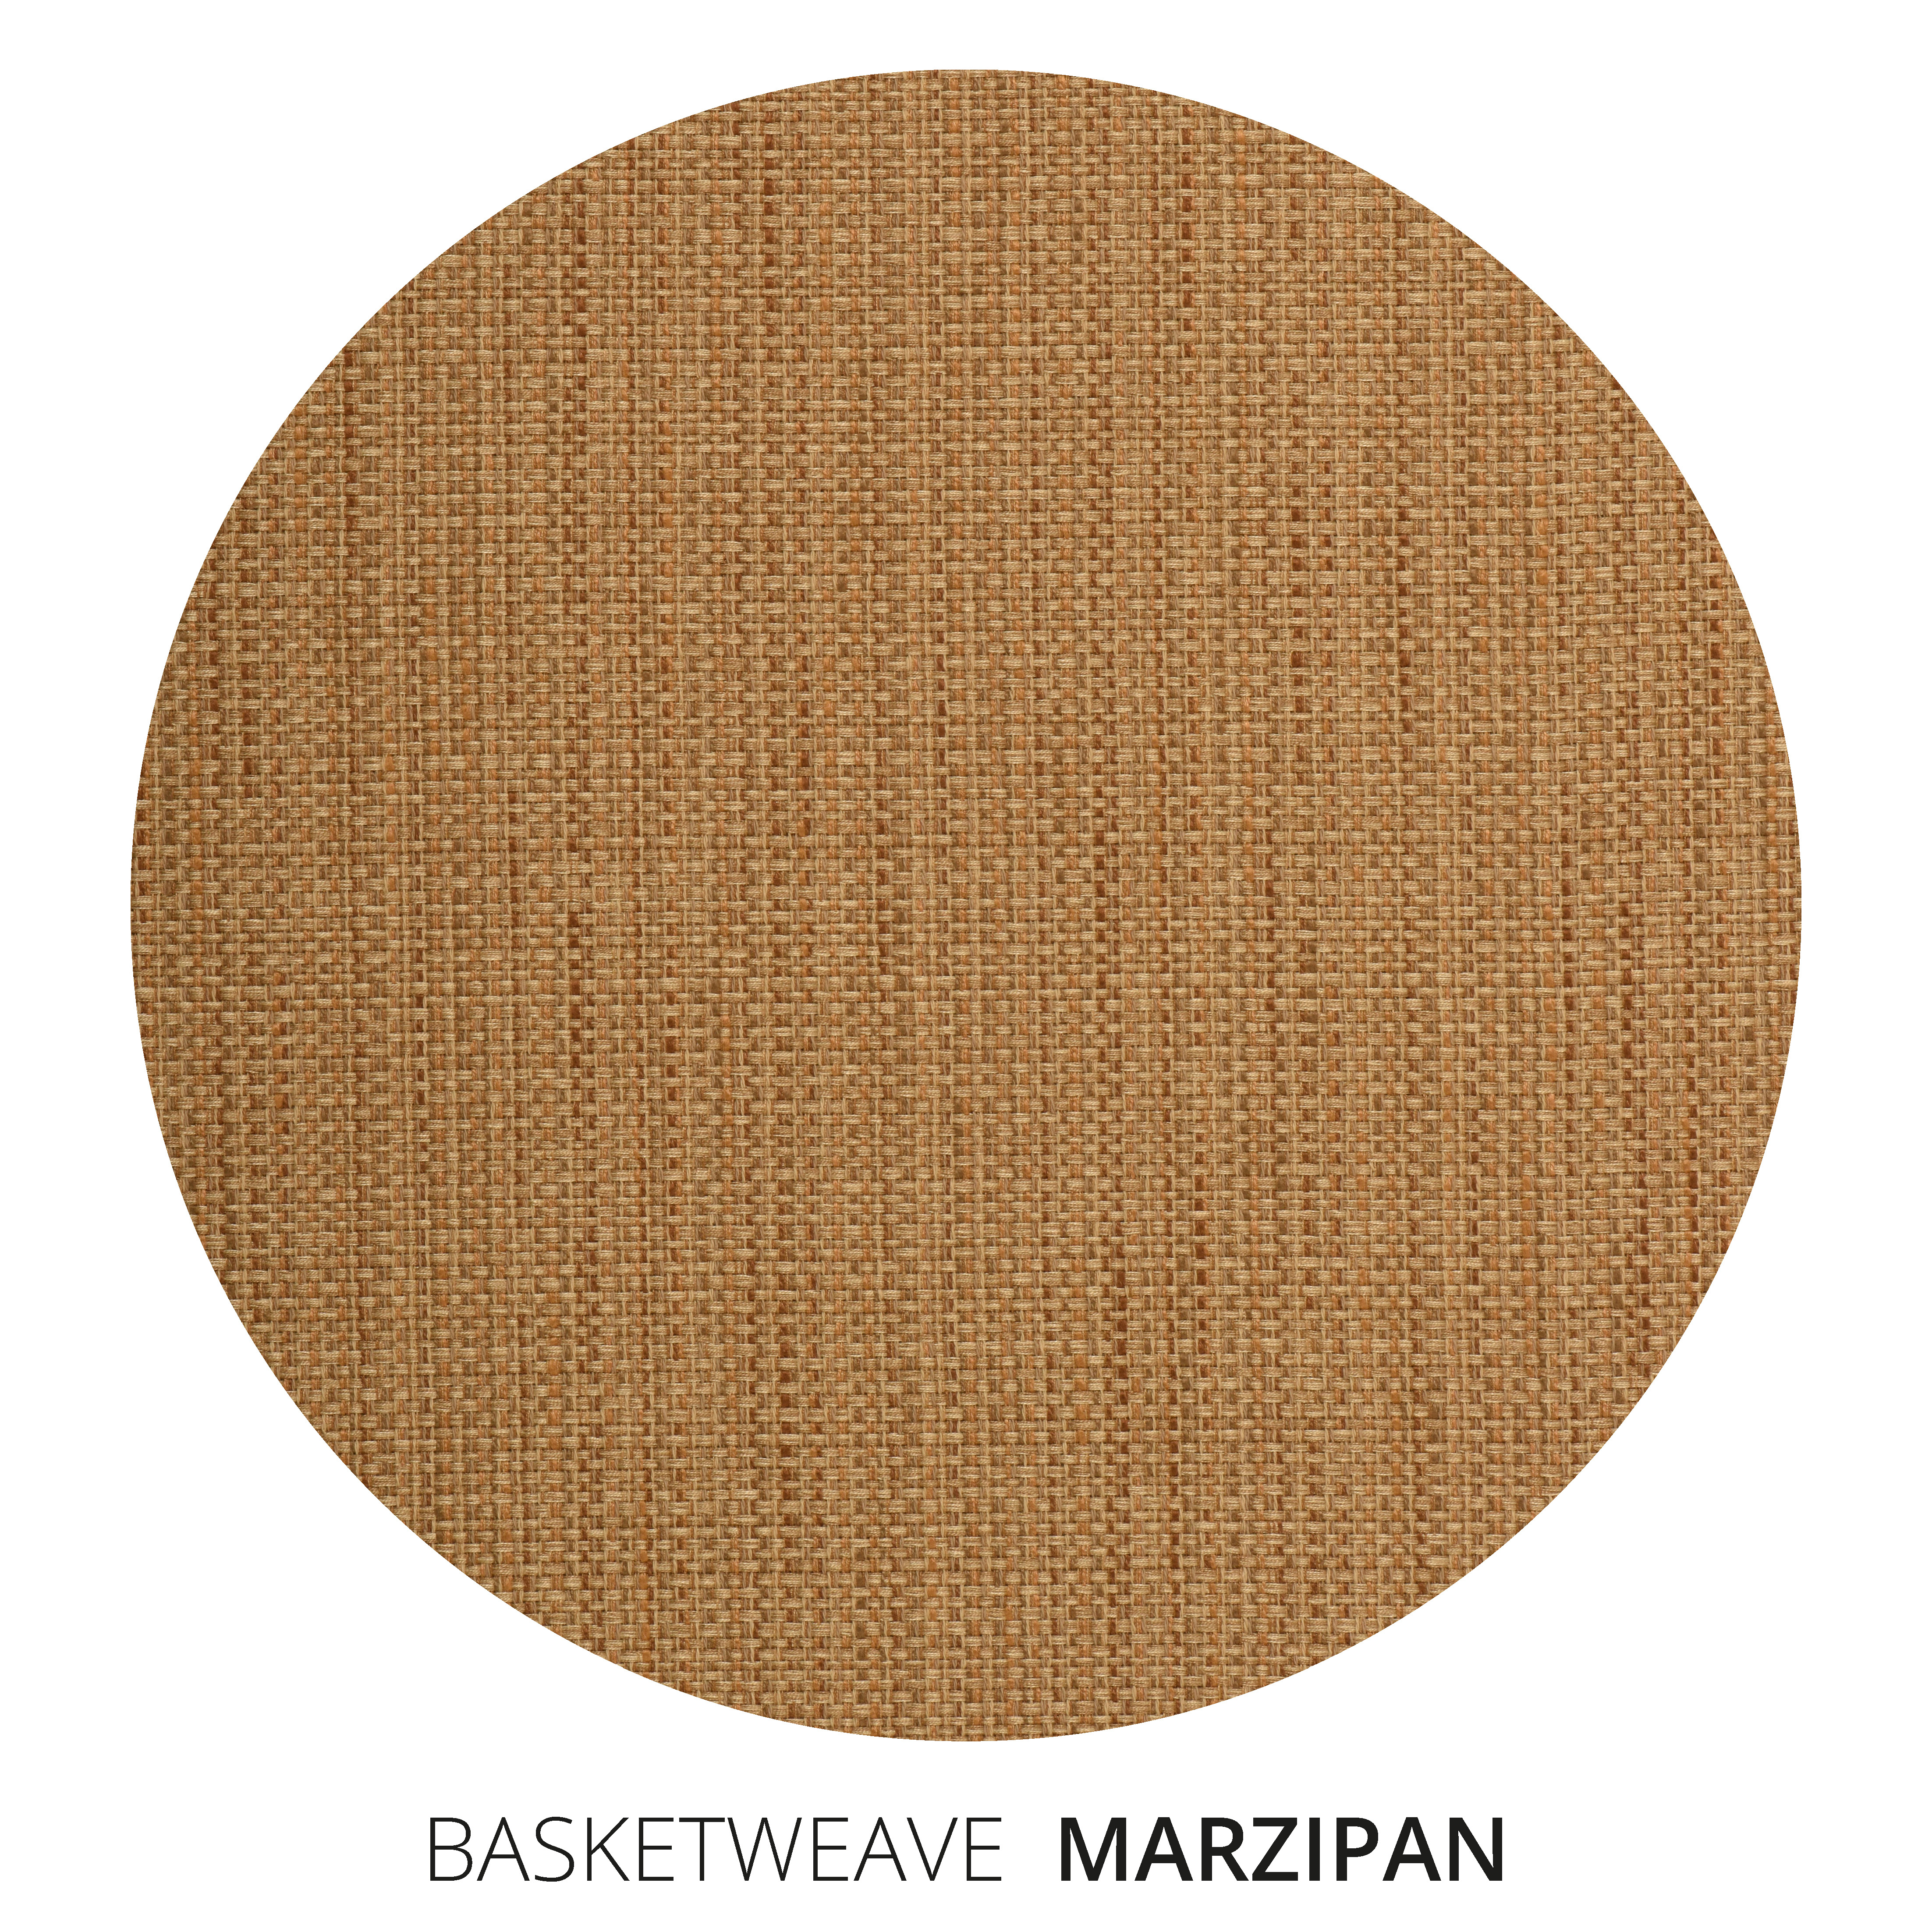 Marzipan Basketweave Swatch